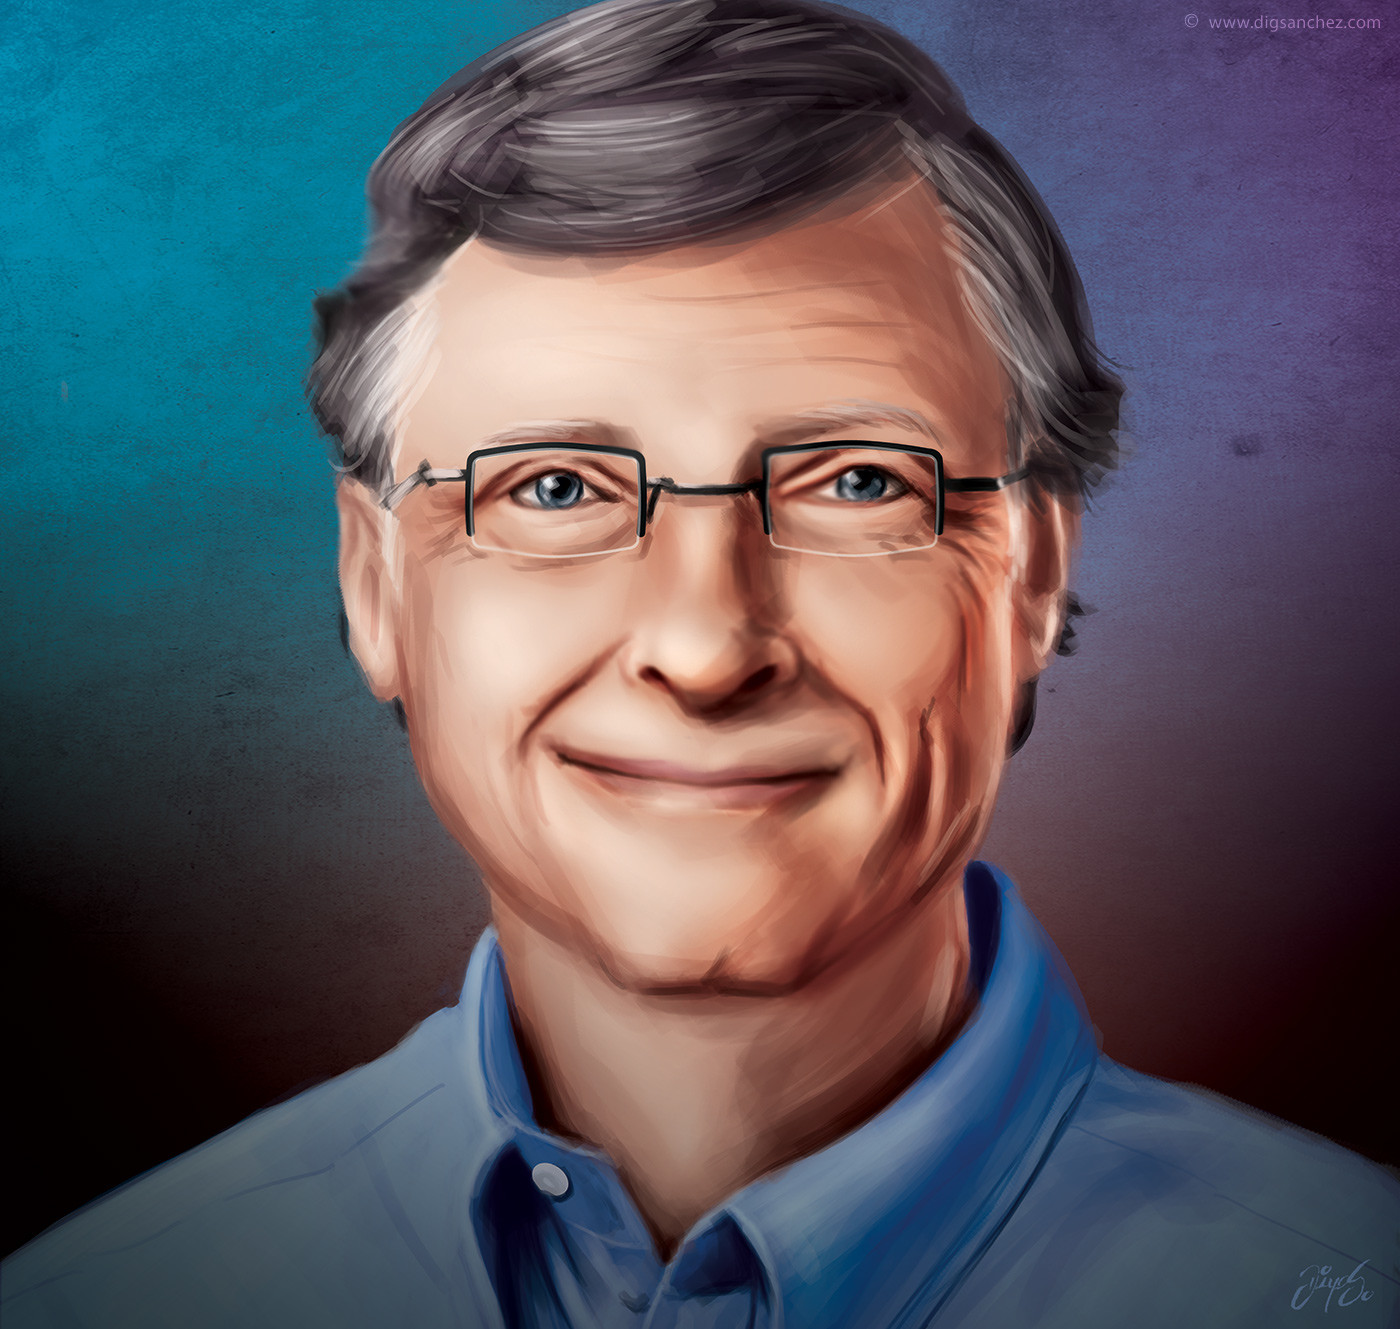 Card character - Bill Gates